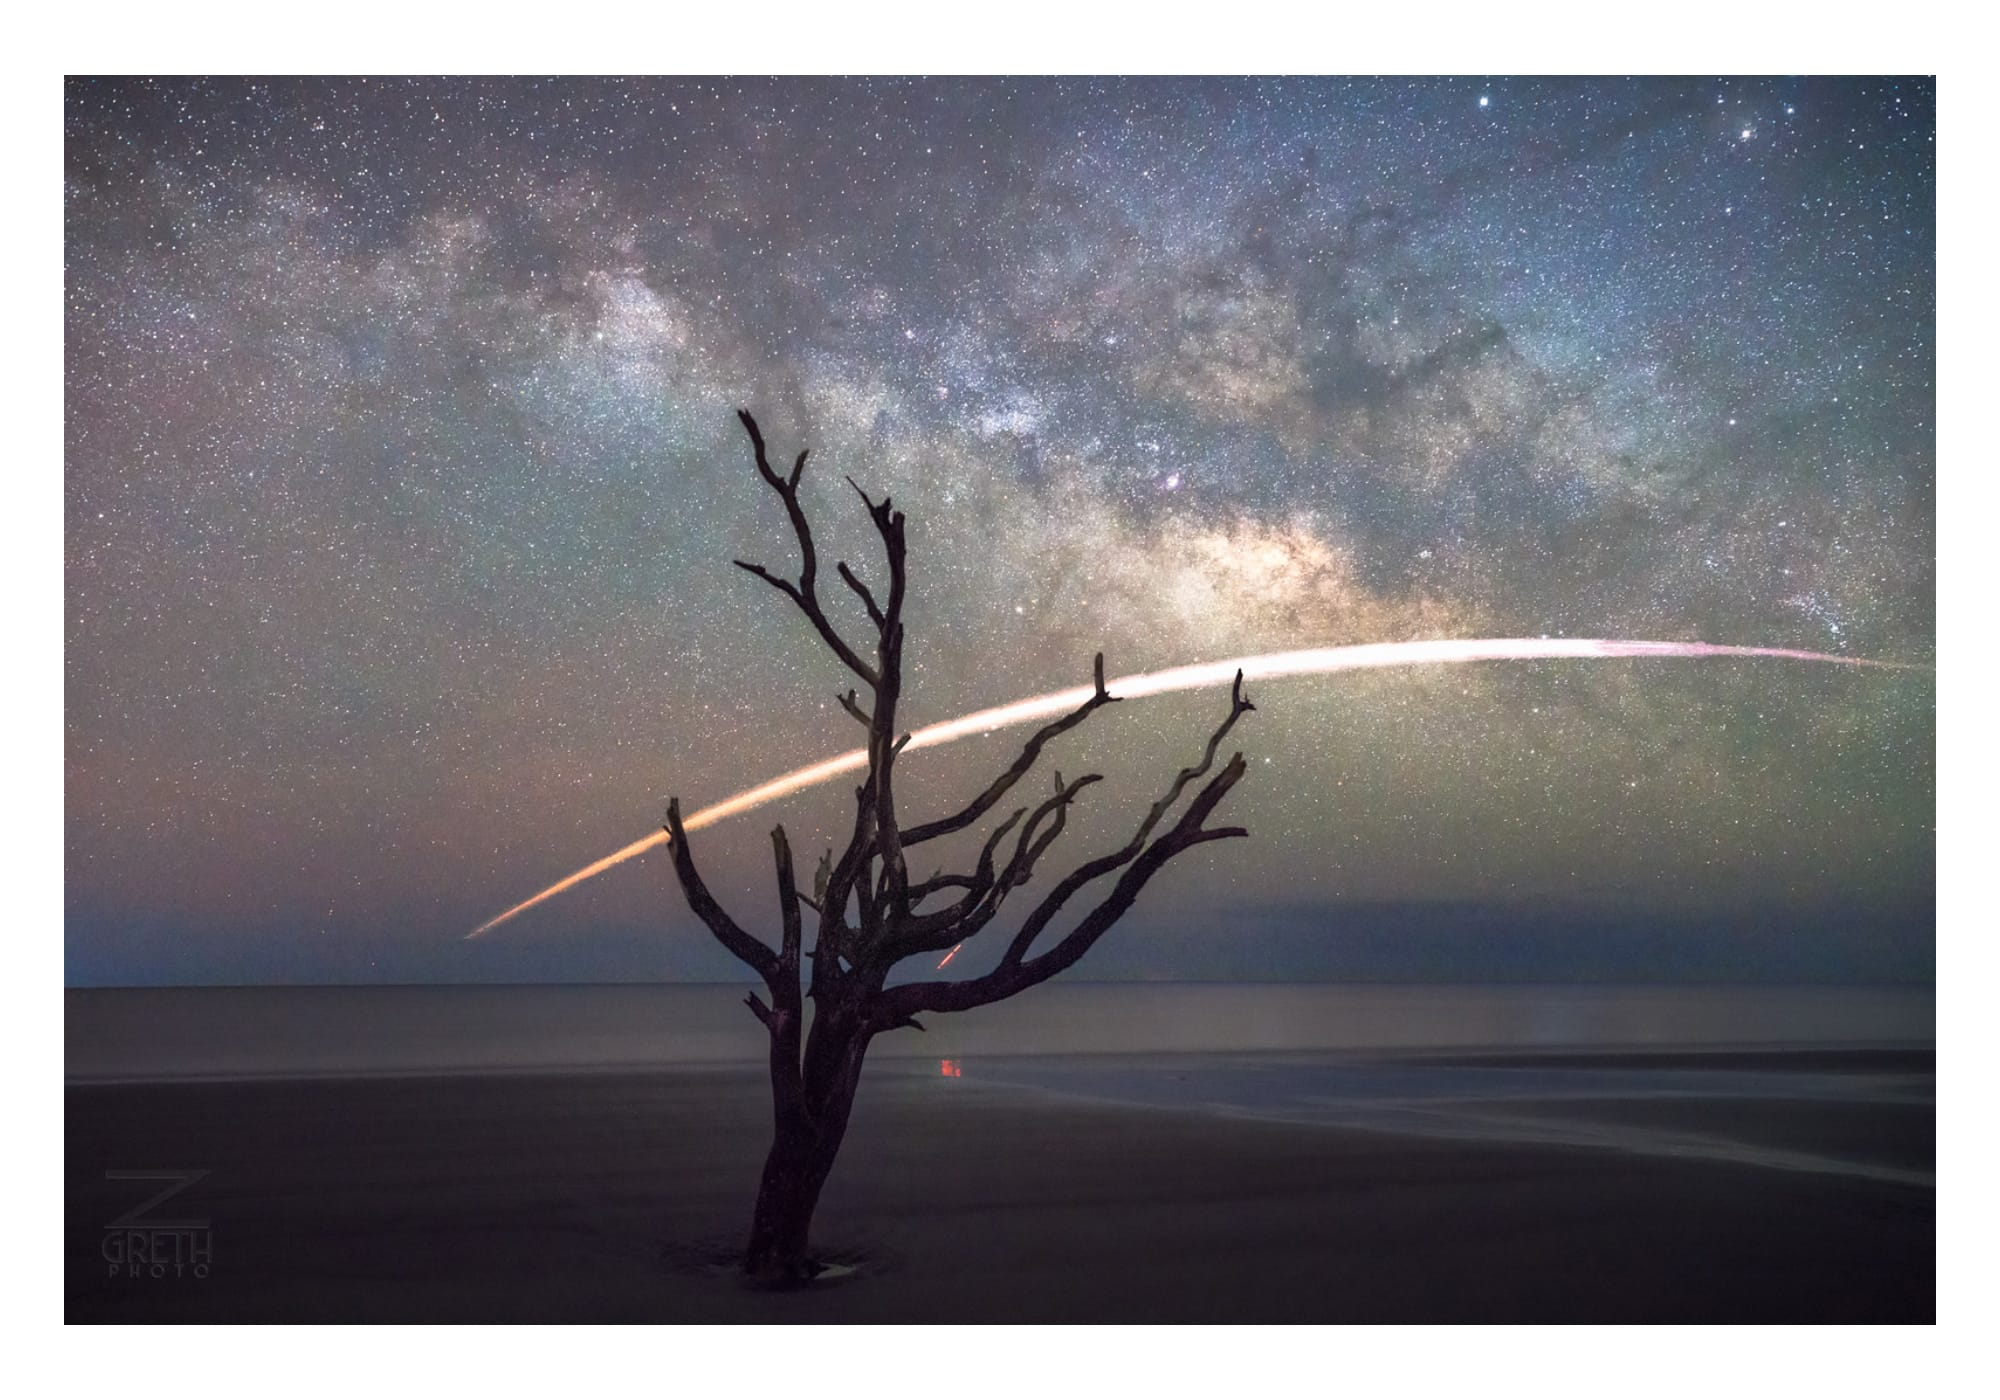 SpaceX-astrophotography-by-Zach-Grether